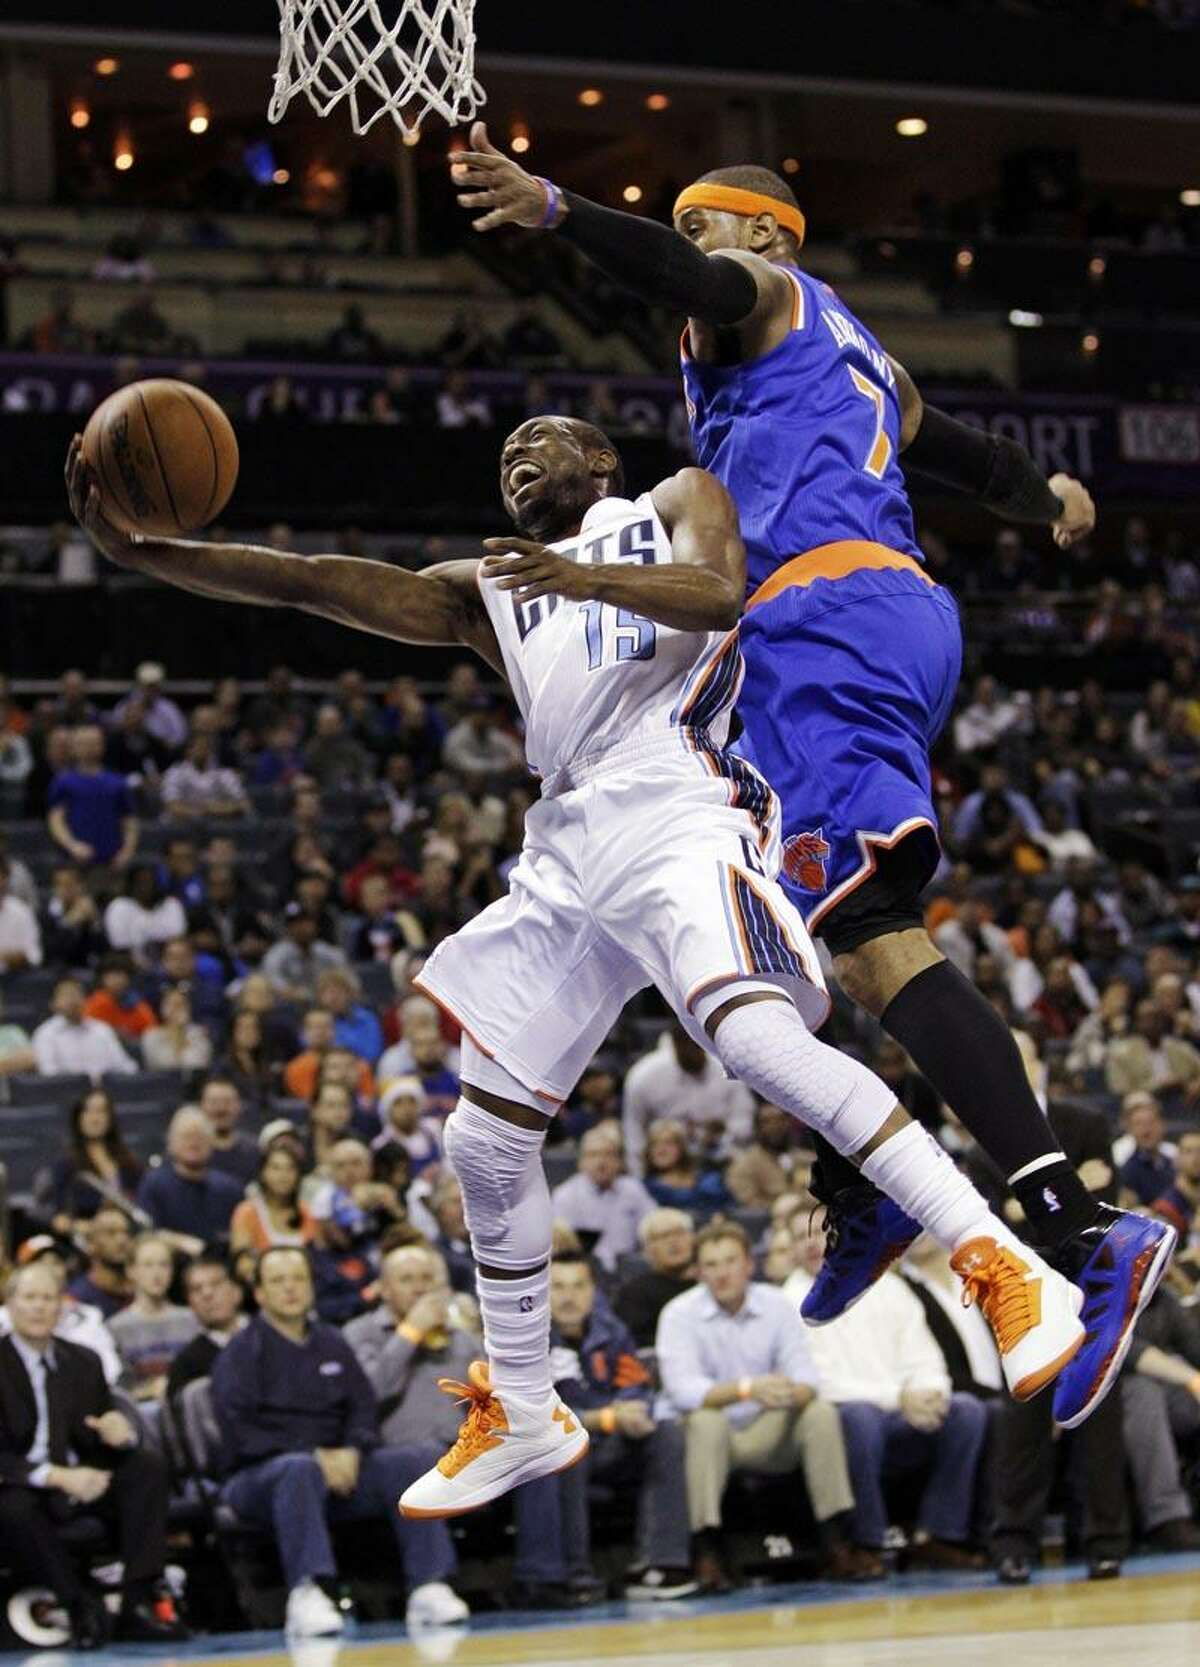 Charlotte Bobcats' Kemba Walker (15) is fouled as he drives past New York Knicks' Carmelo Anthony (7) during the first half of an NBA basketball game in Charlotte, N.C., Wednesday, Dec. 5, 2012. (AP Photo/Chuck Burton)